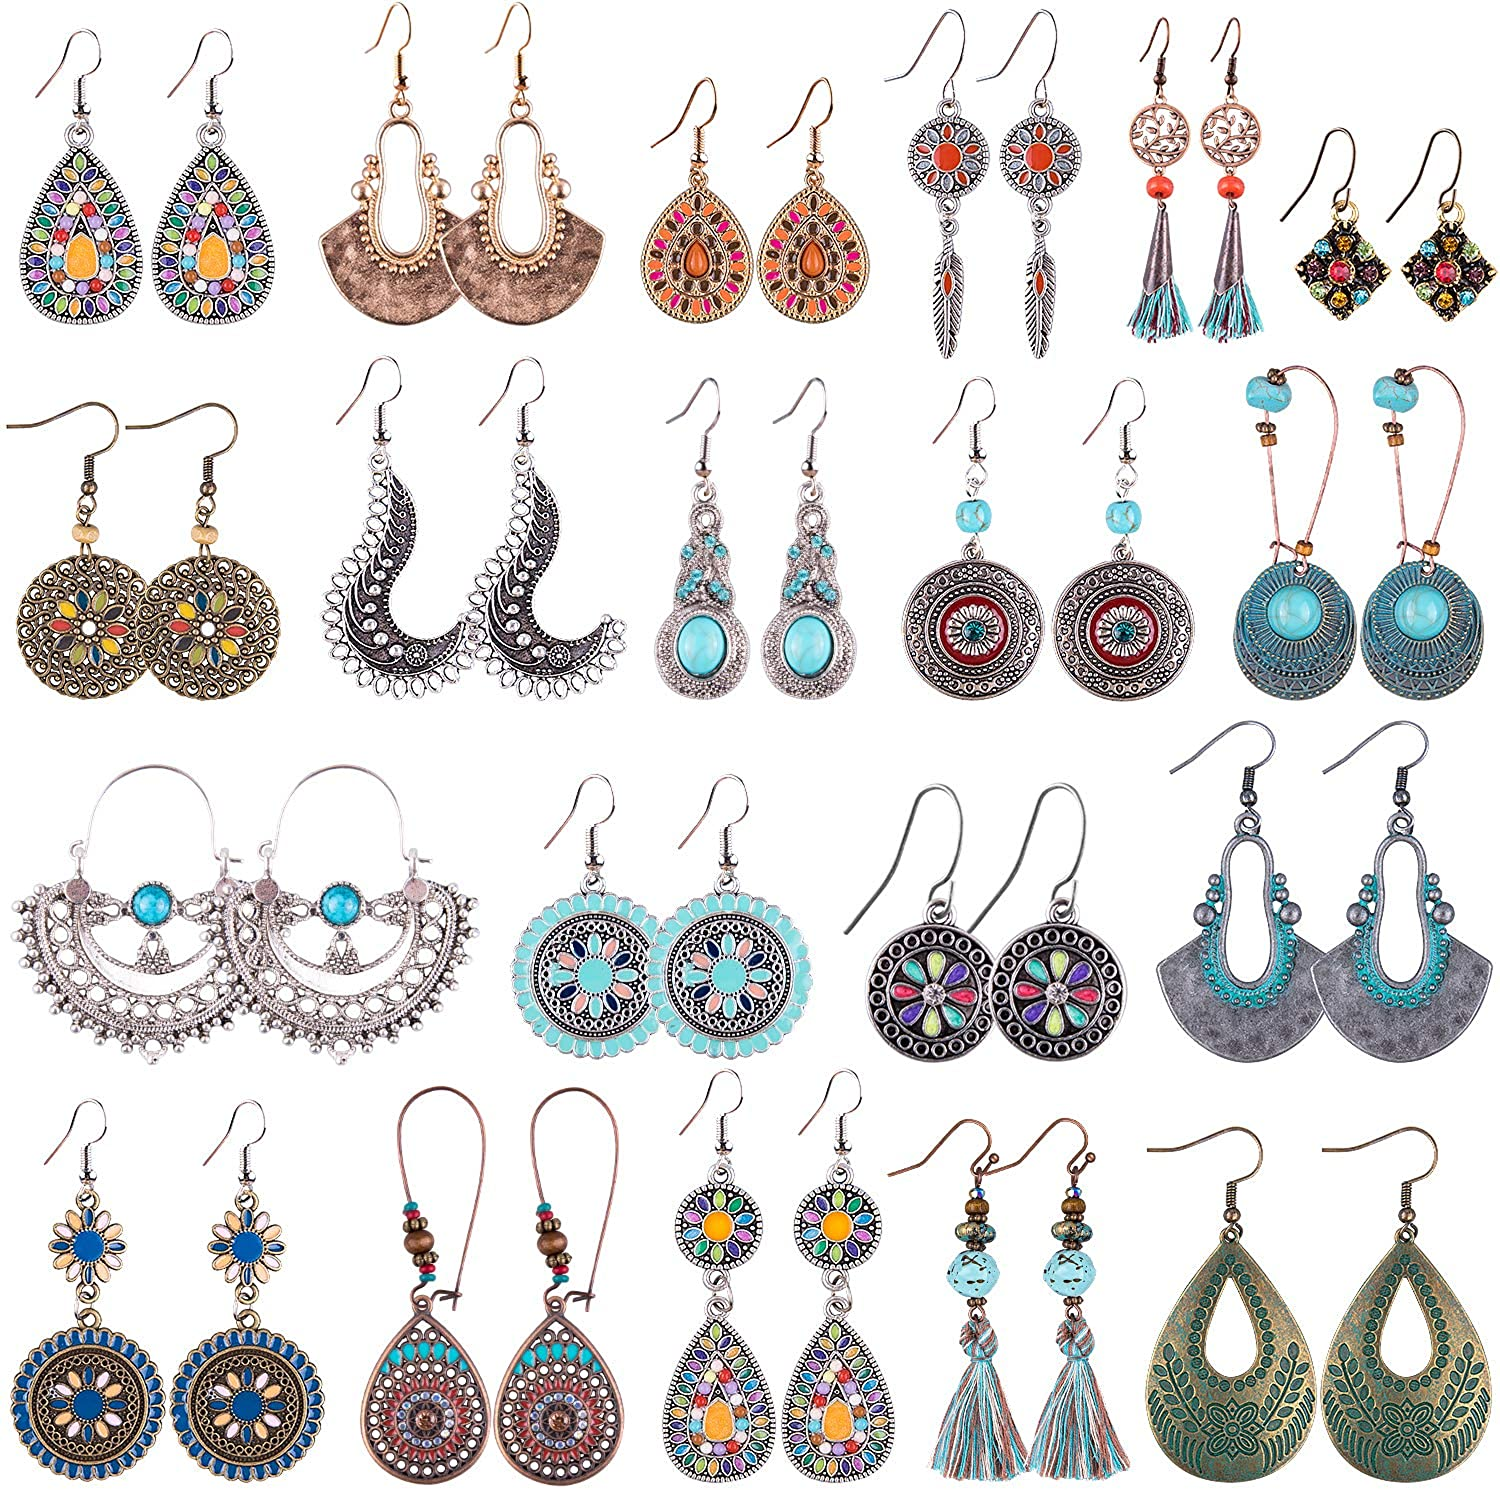 4Pairs//Set Vintage Bohemia Earrings for Women Jewelry Boho Long Crystal Stud Earing Set